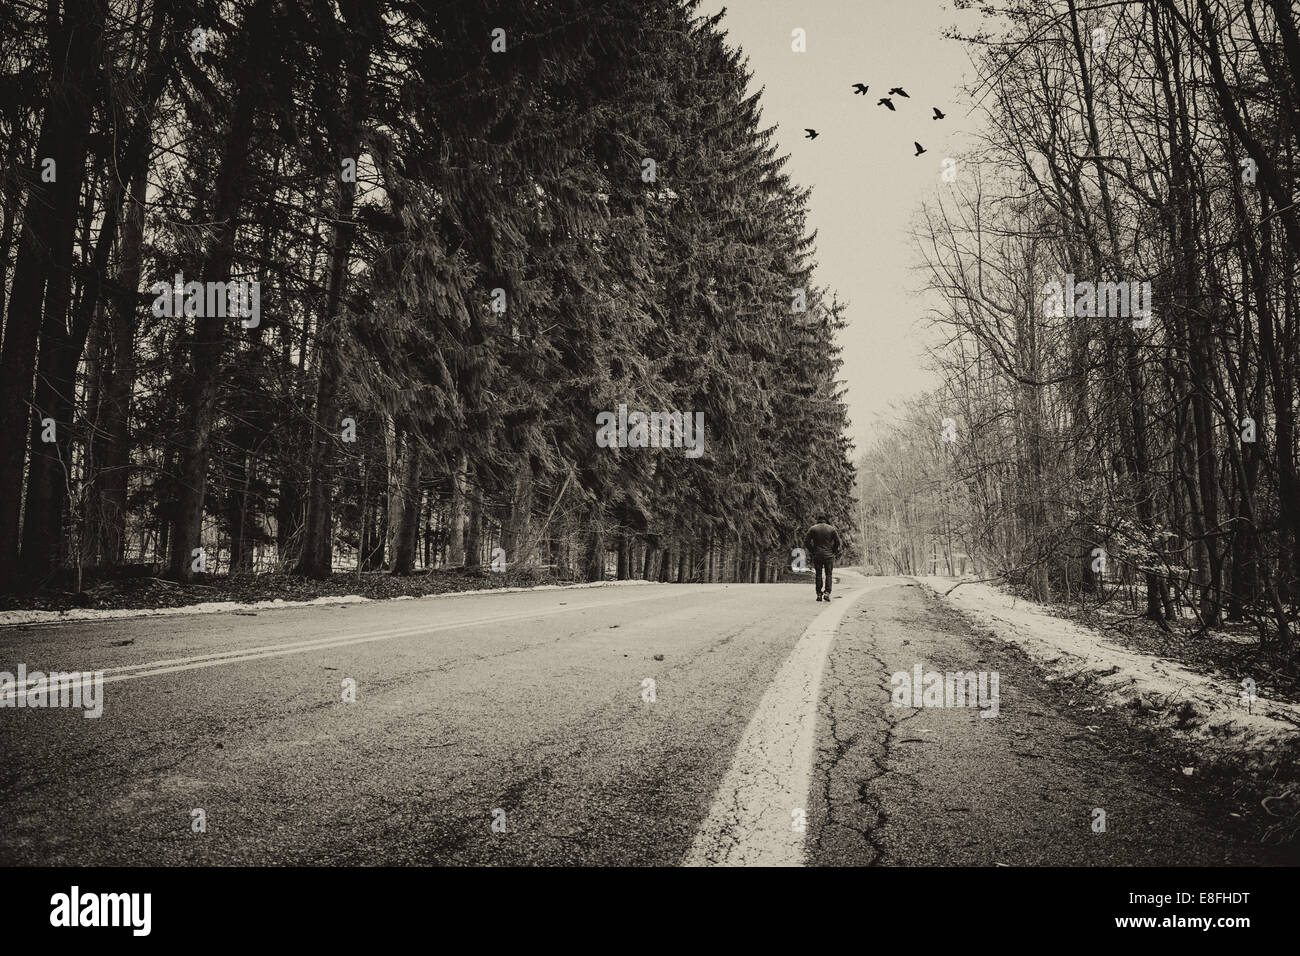 USA, Indiana, Man walking on road - Stock Image